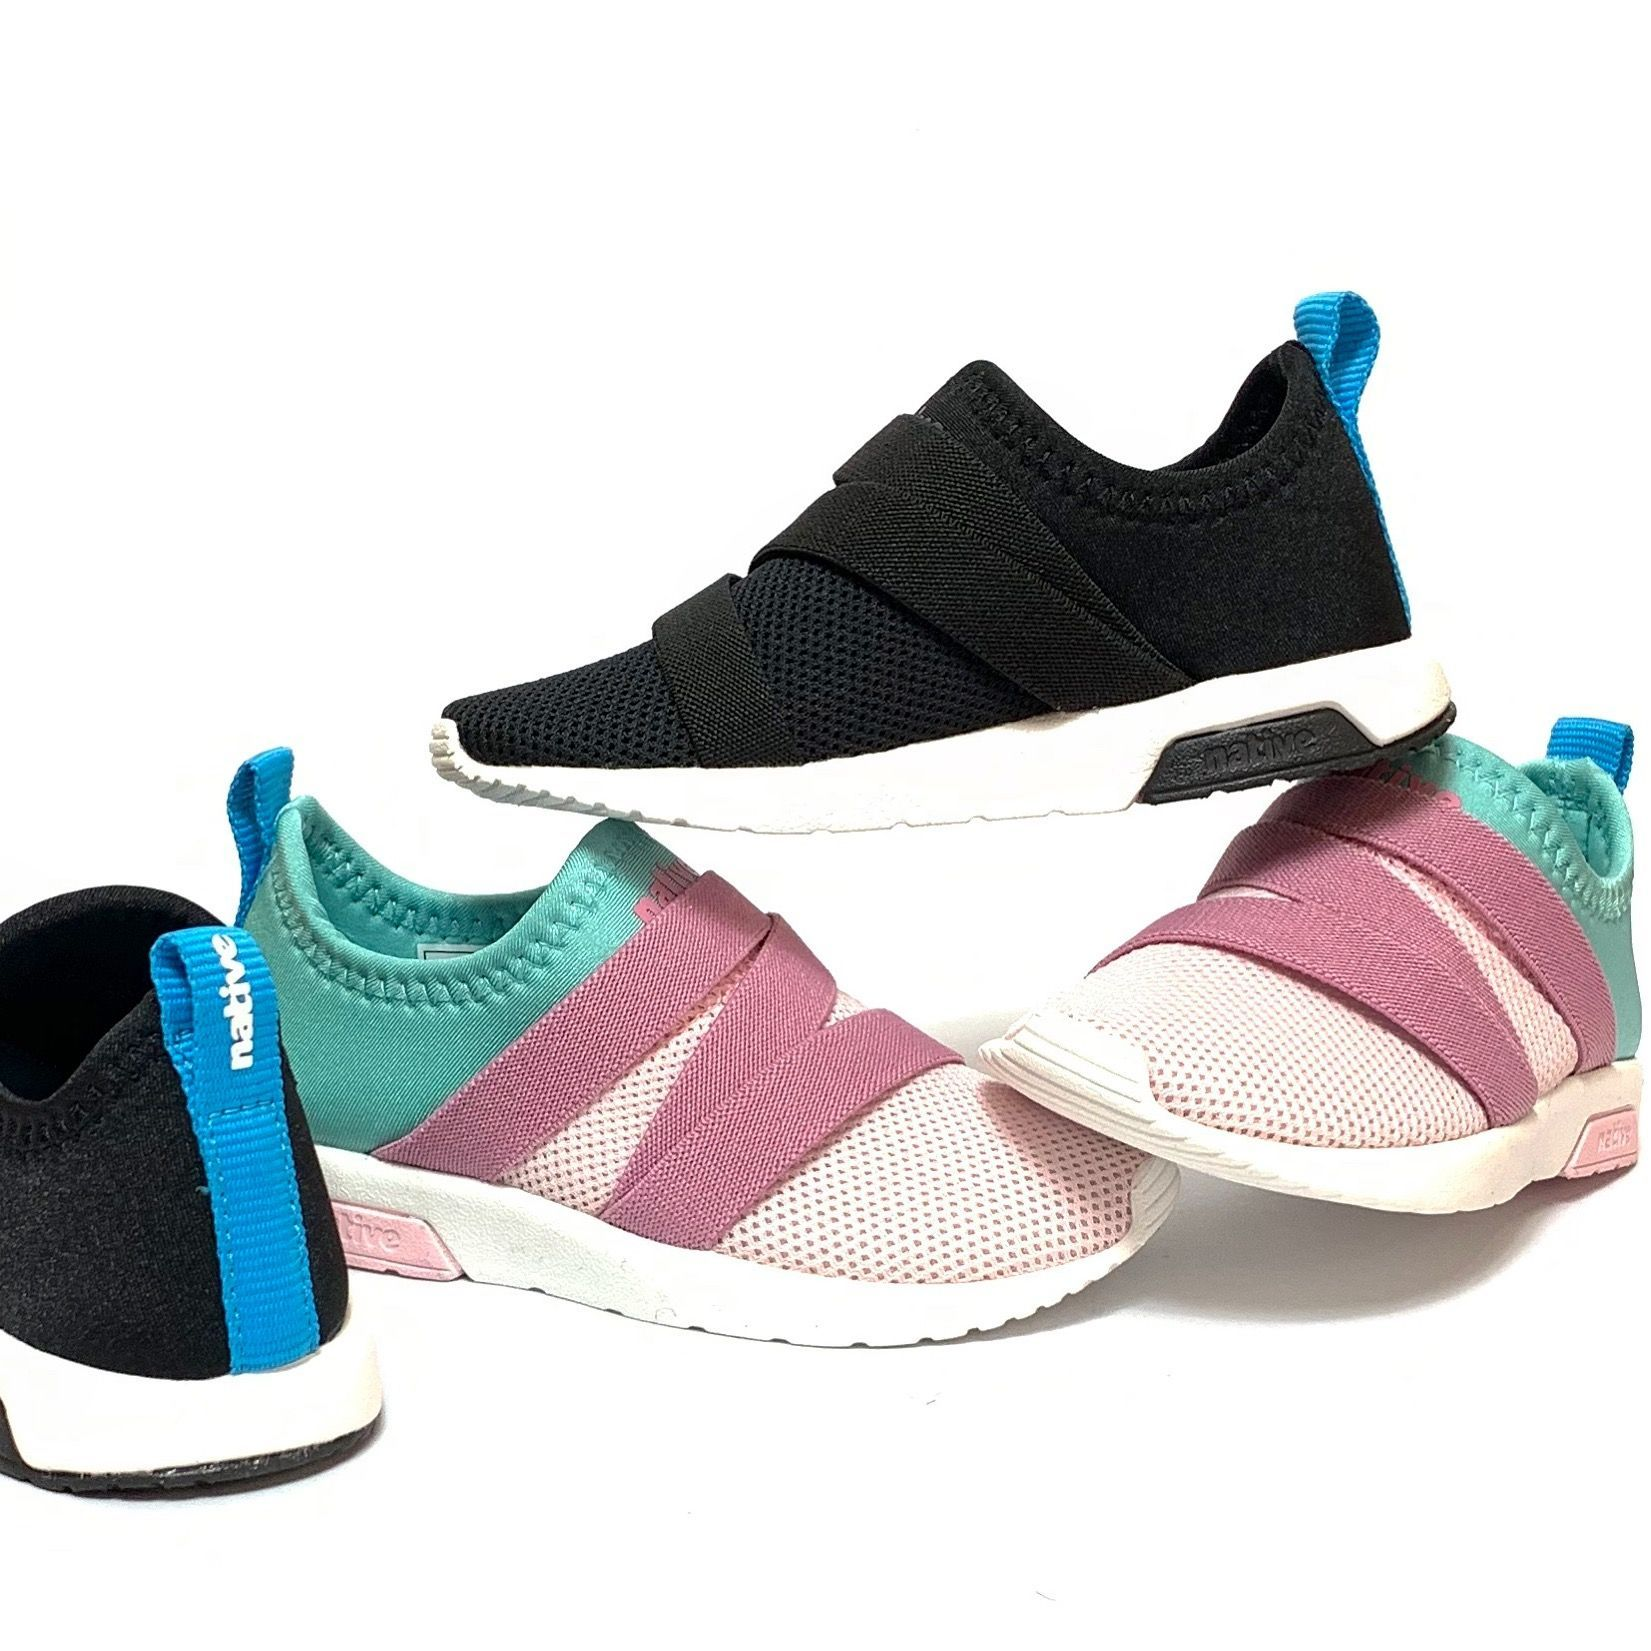 These gender neutral kids' tennis shoes